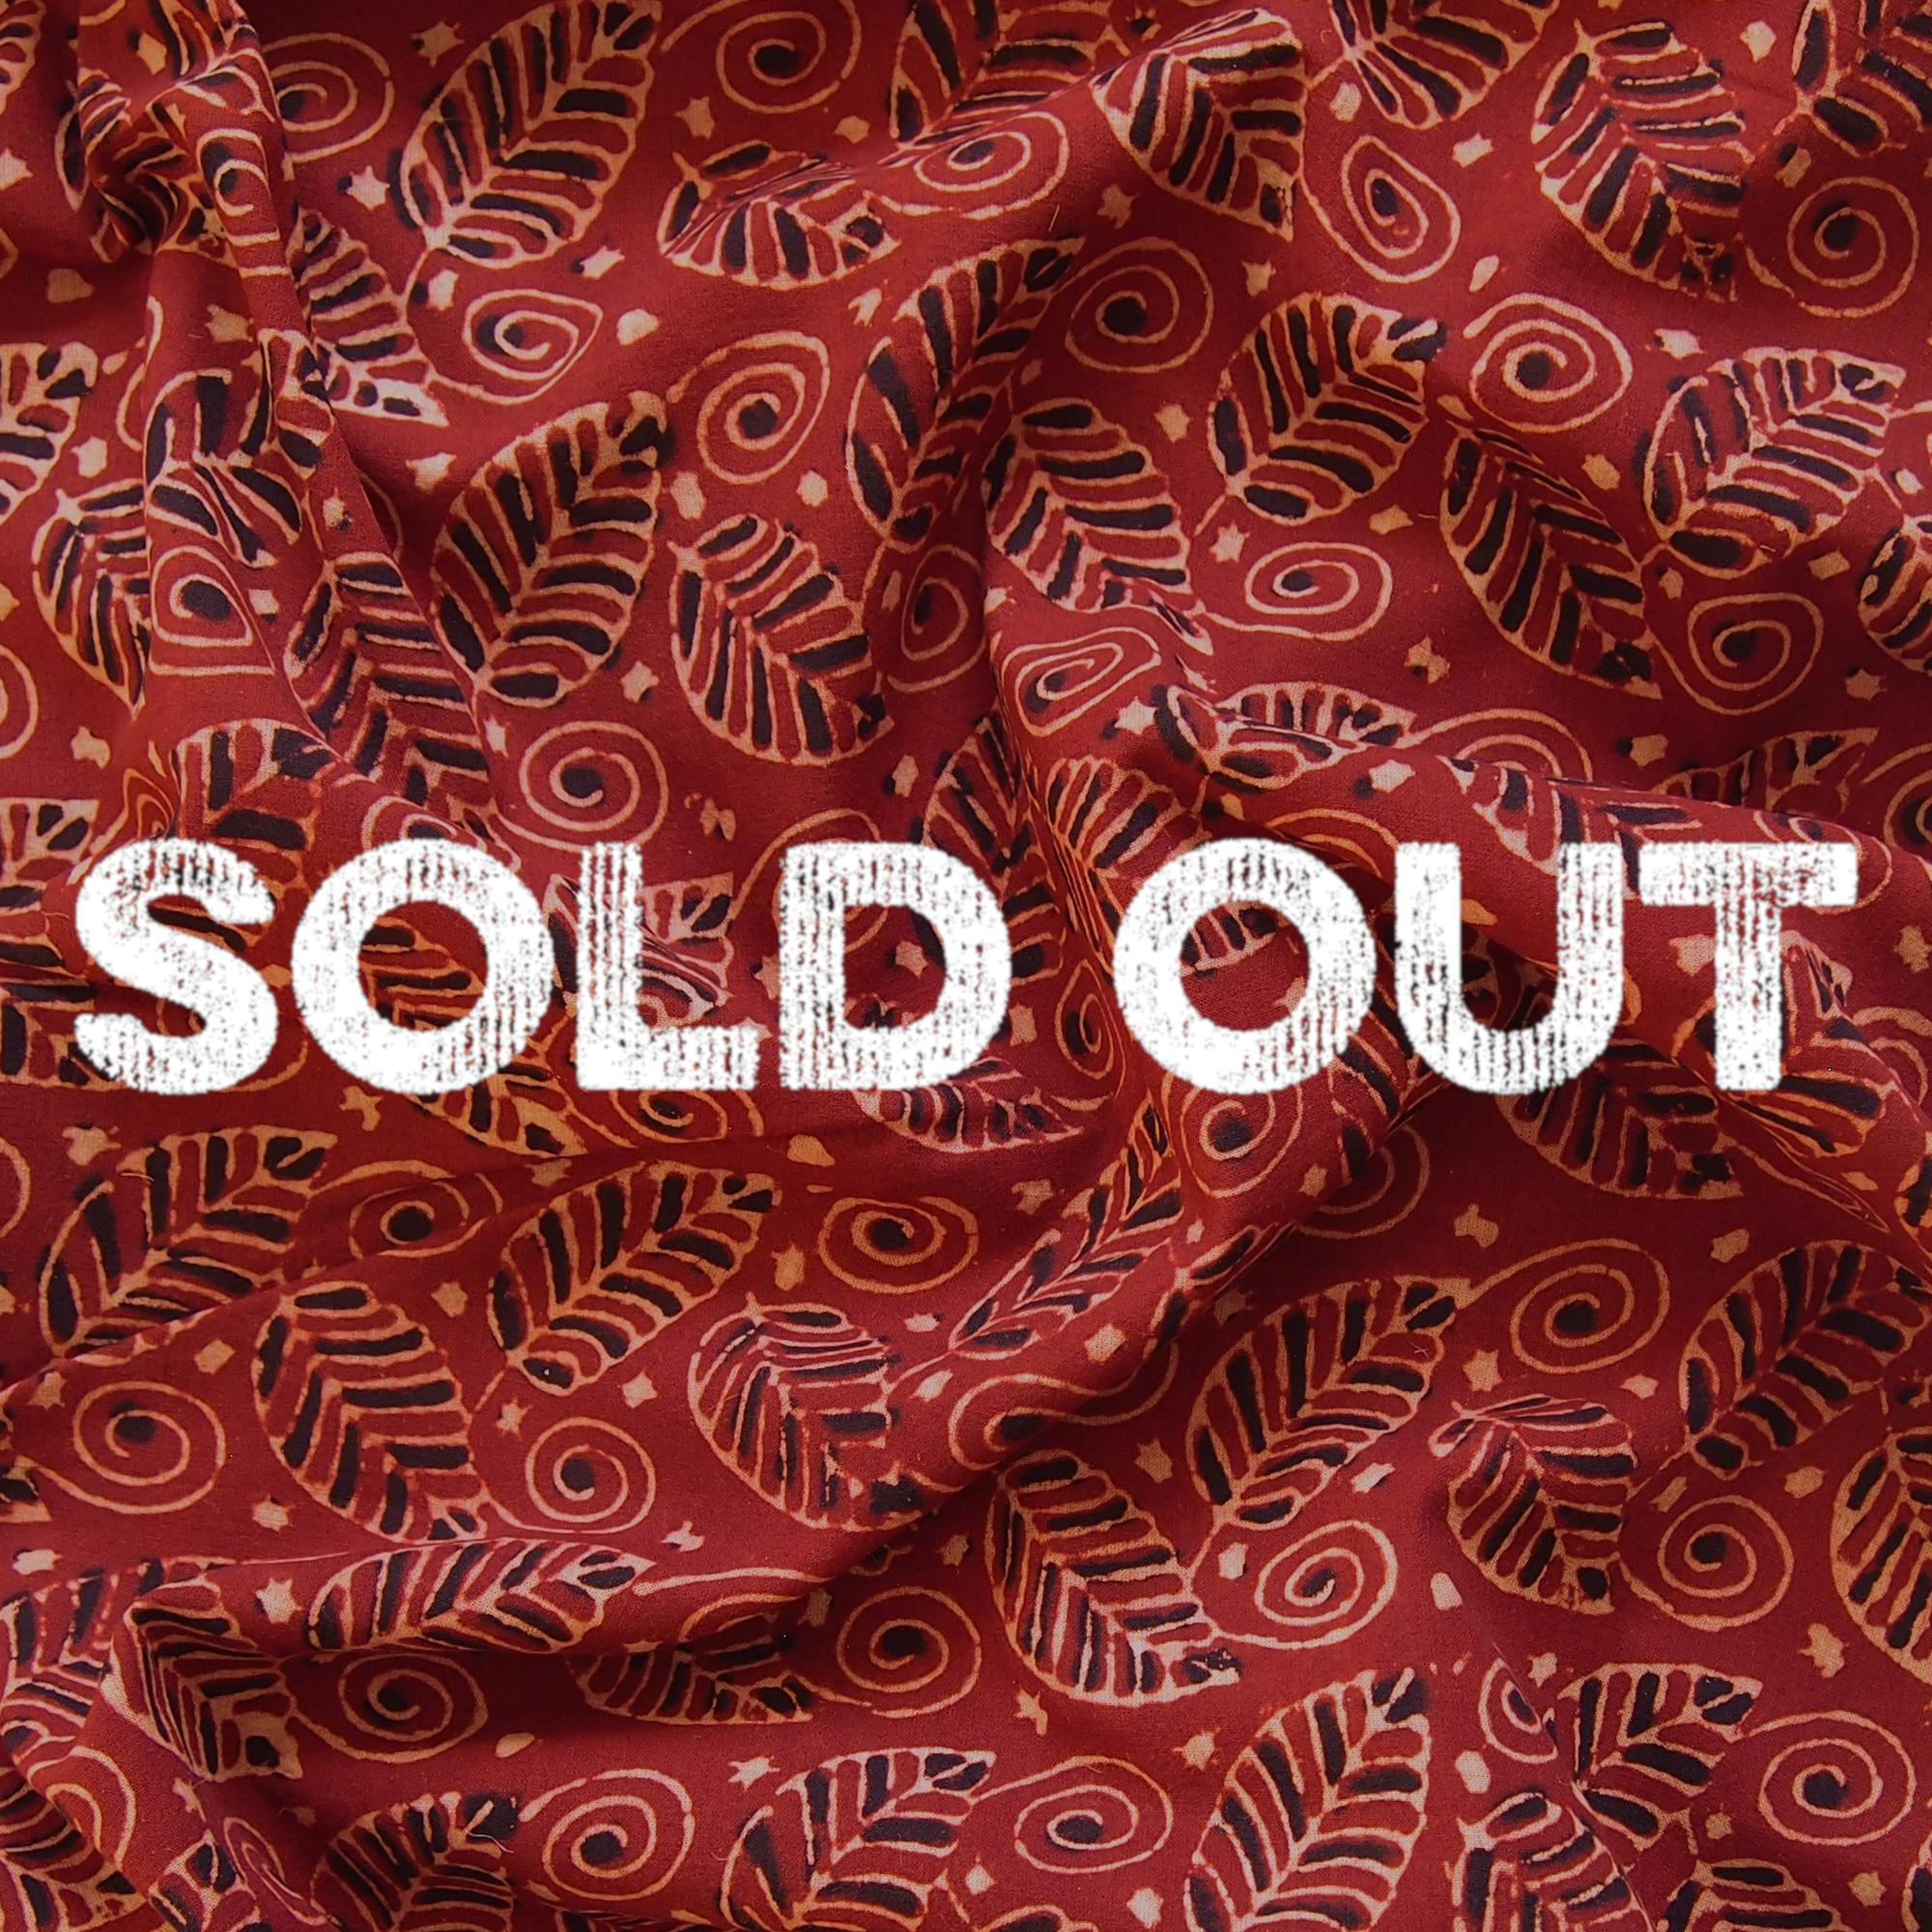 Block Printed Fabric, 100% Cotton, Ajrak Design: Red Madder Root Base, Black, Beige Foliage. Contrast, Sold Out